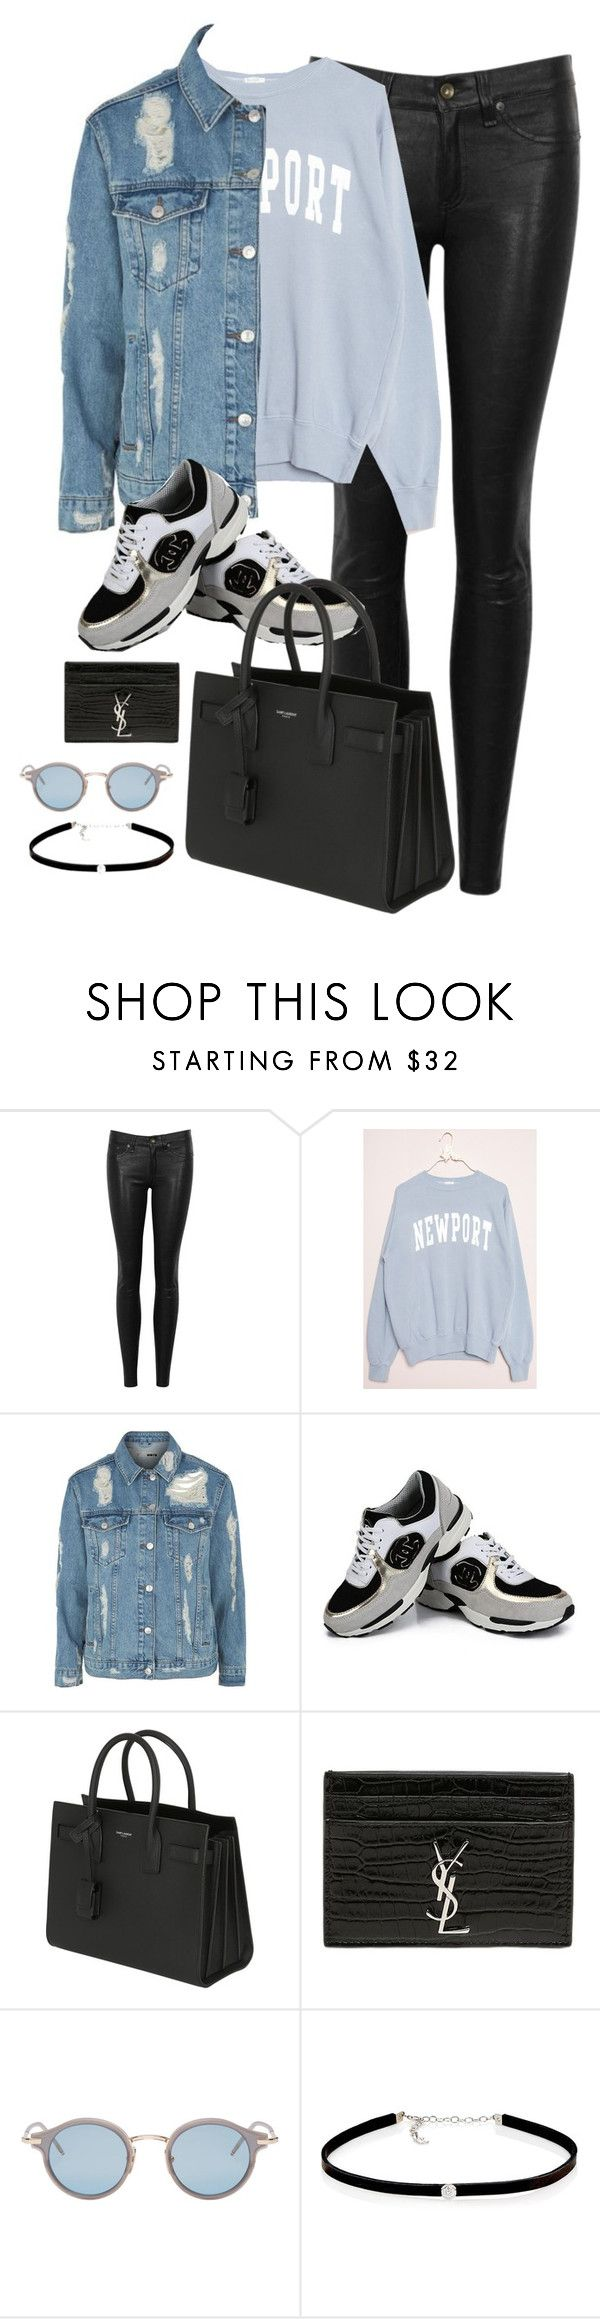 """Untitled #3065"" by theaverageauburn on Polyvore featuring rag & bone/JEAN, Topshop, Chanel, Yves Saint Laurent, Thom Browne and Carbon & Hyde"